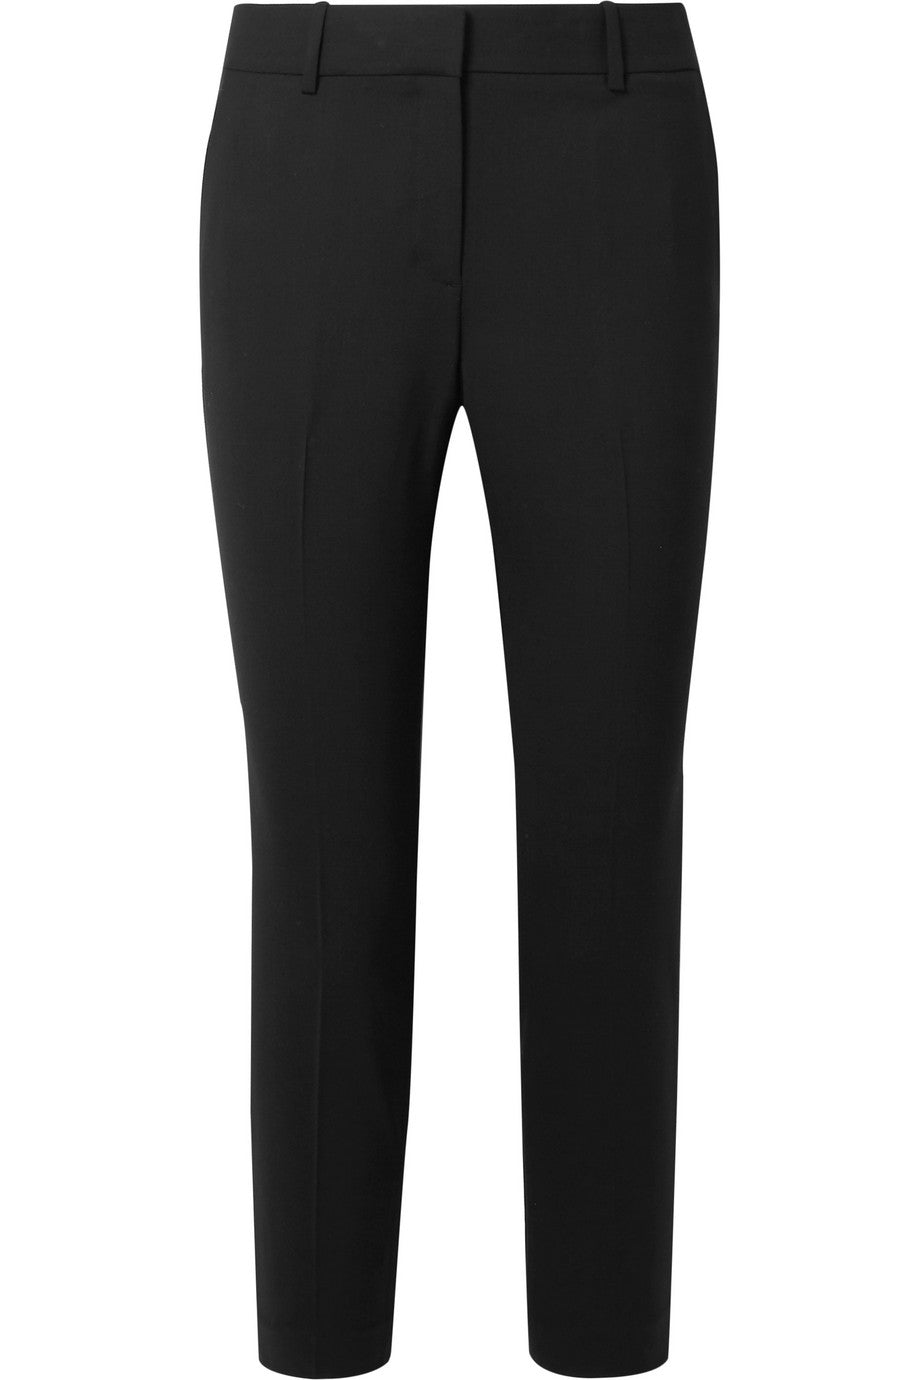 Theory - Black tapered slim-fit 'Treeca 2' stretch wool tapered pants trousers